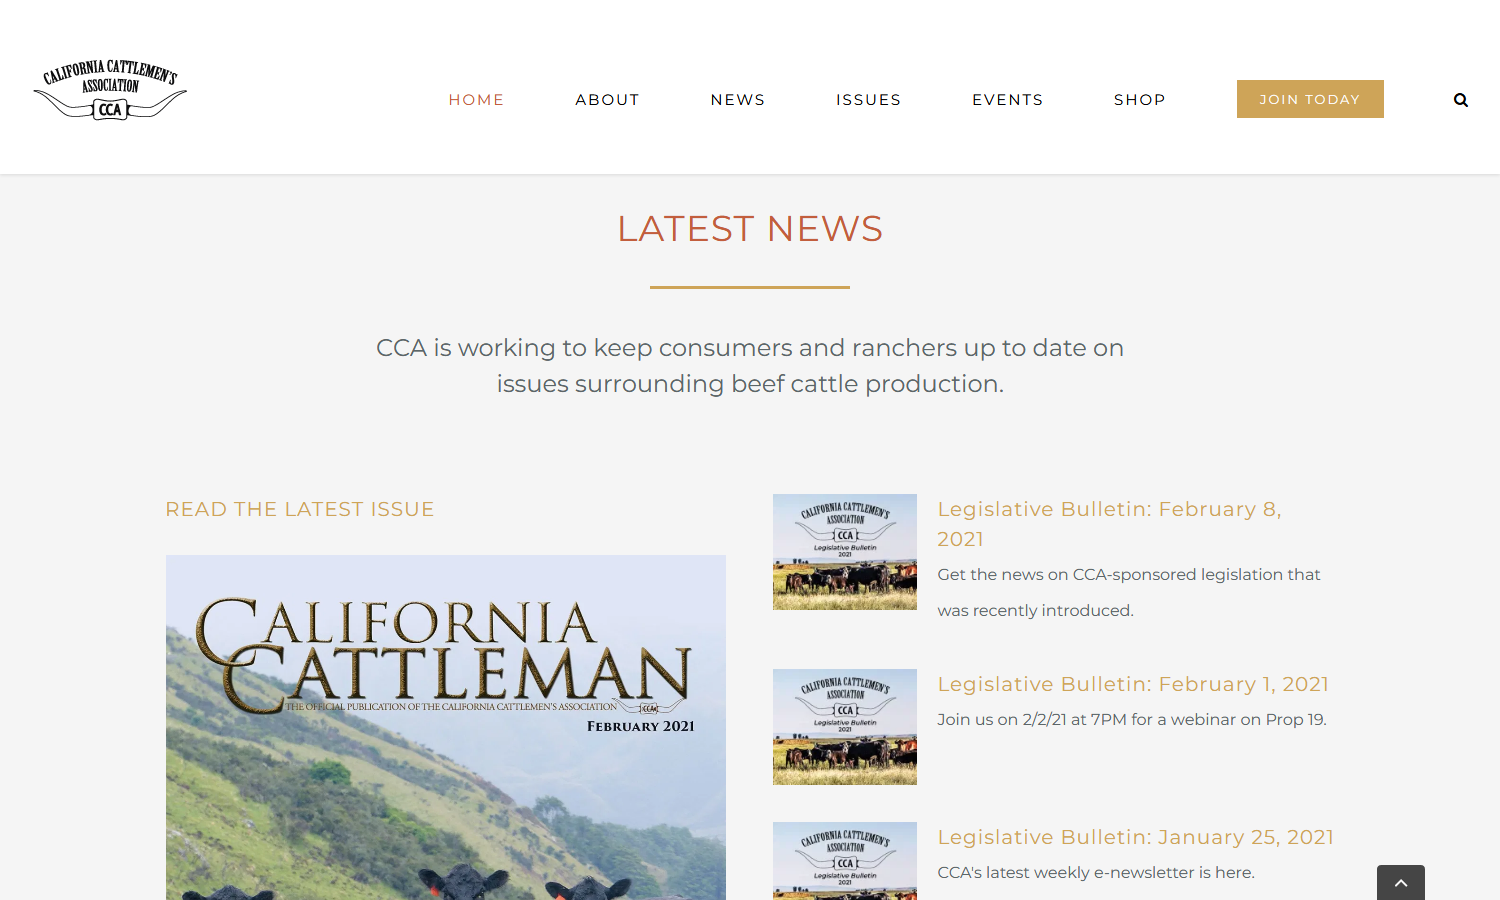 California Cattlemen's Association portfolio image 3